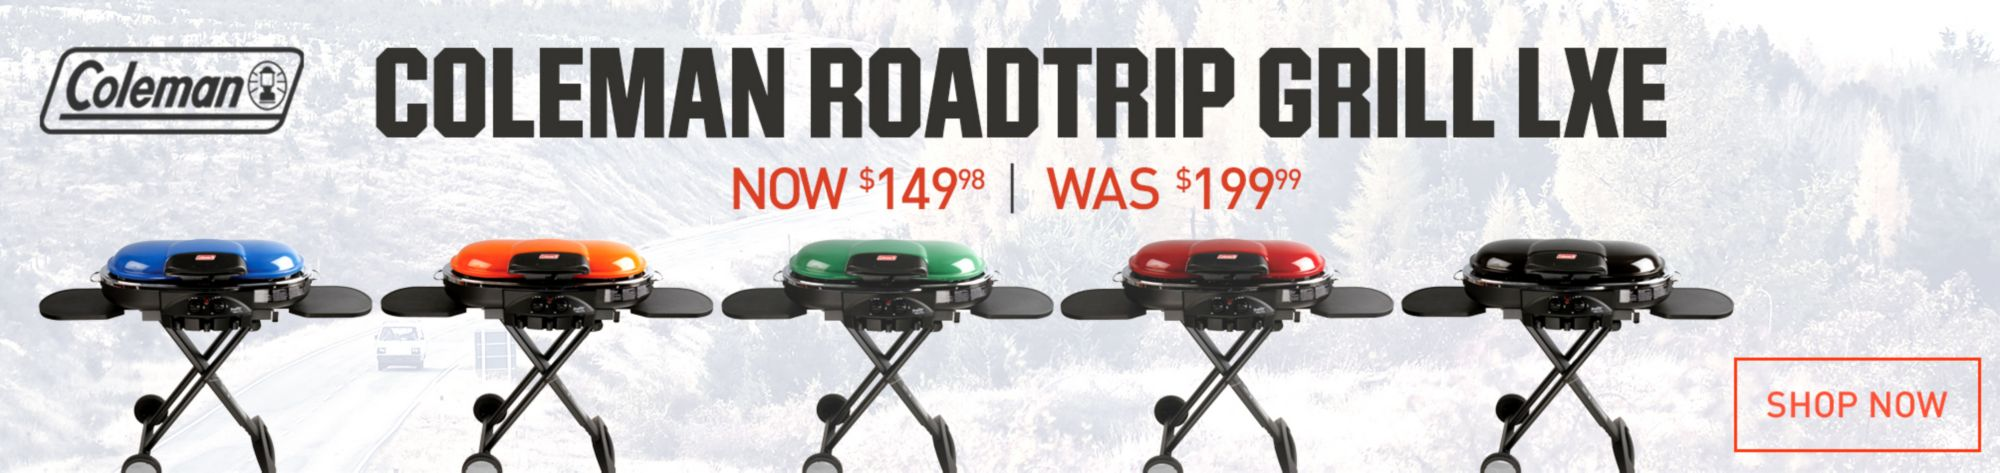 Shop Putdoor Roadtrip Grill